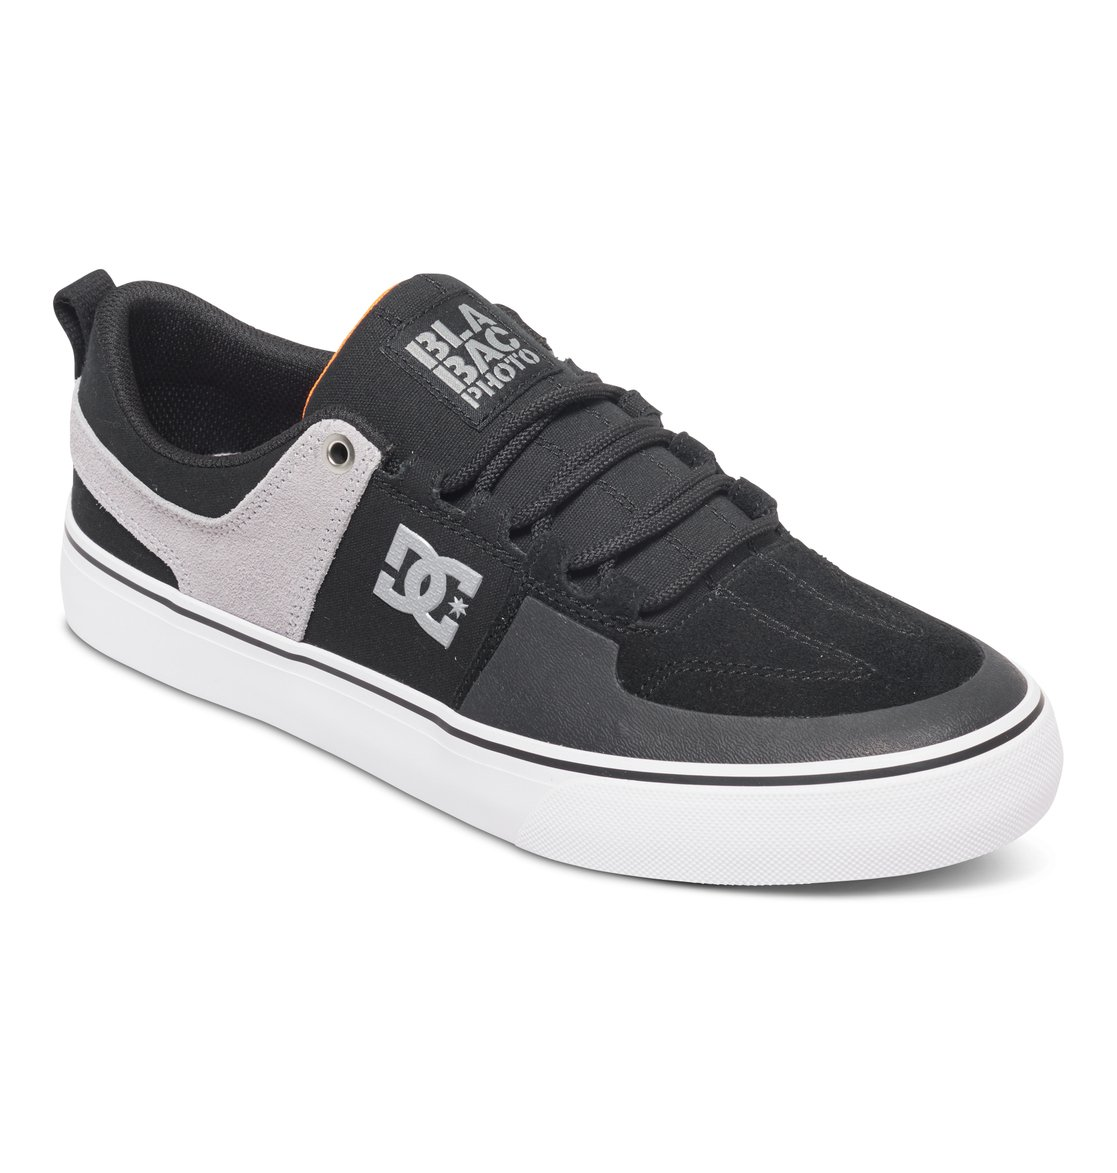 lynx vulc s blabac chaussures de skate adys300331 dc shoes. Black Bedroom Furniture Sets. Home Design Ideas